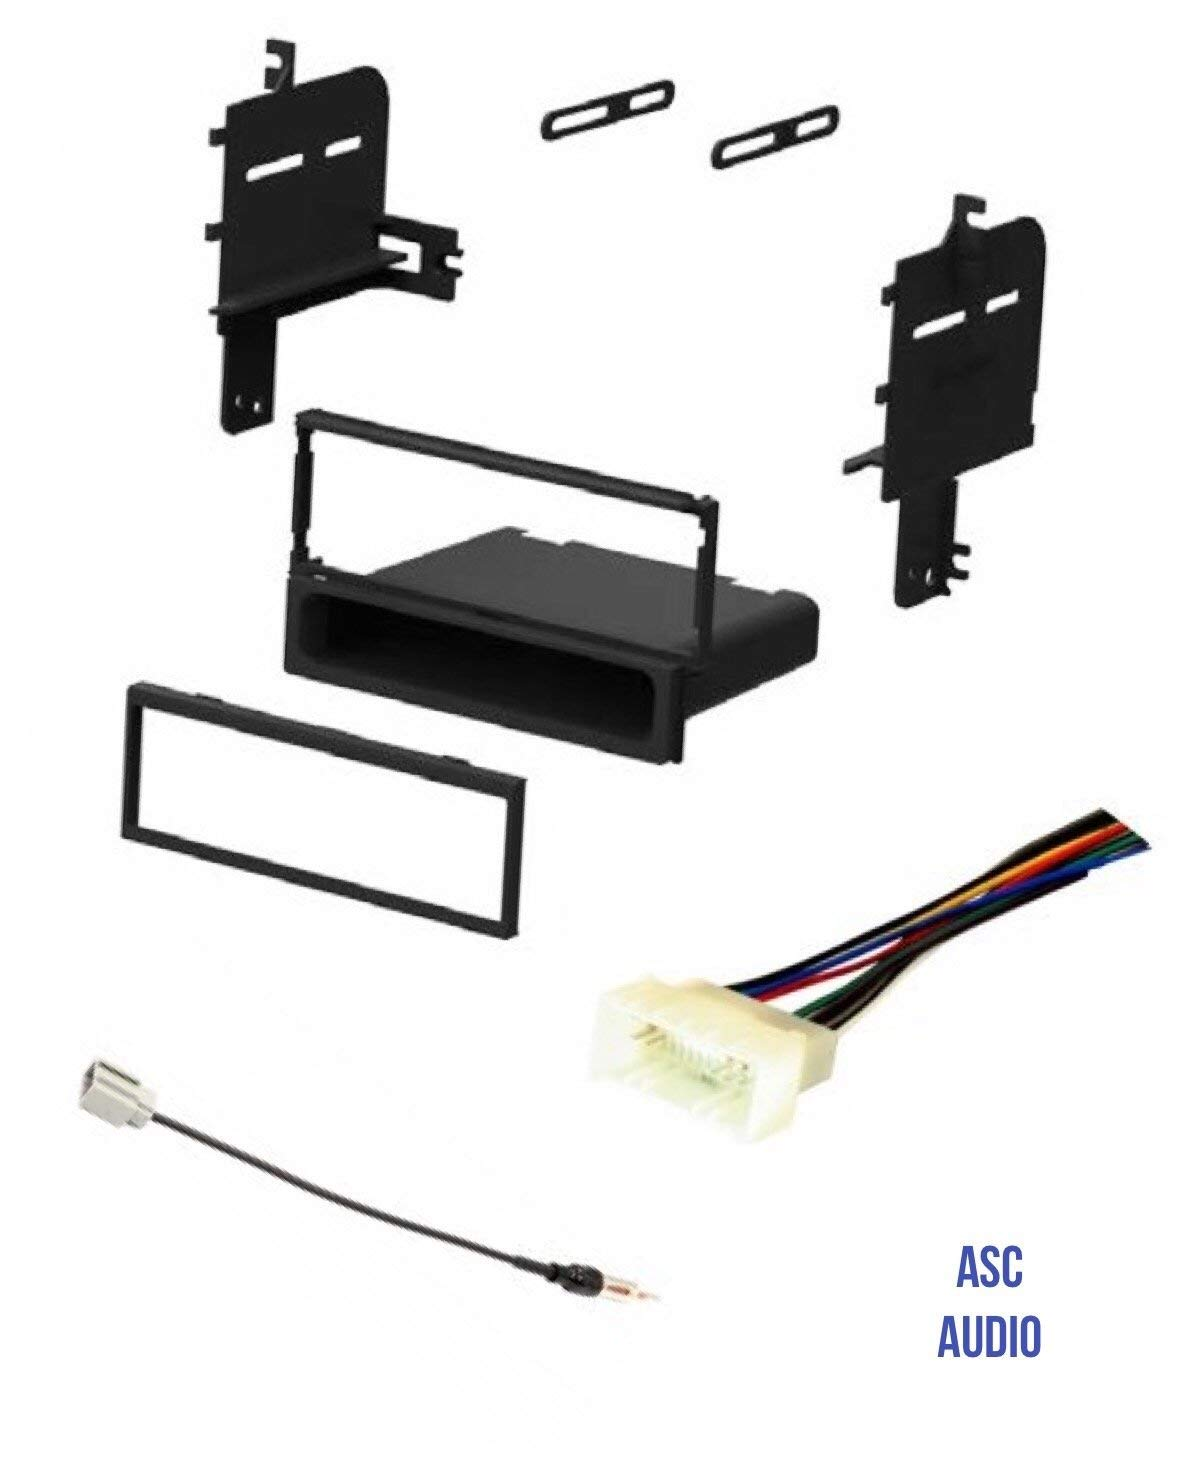 ASC Car Stereo Radio Install Dash Kit, Wire Harness, and Antenna Adapter for installing an Aftermarket Single Din Radio for 2009 2010 Kia Sportage